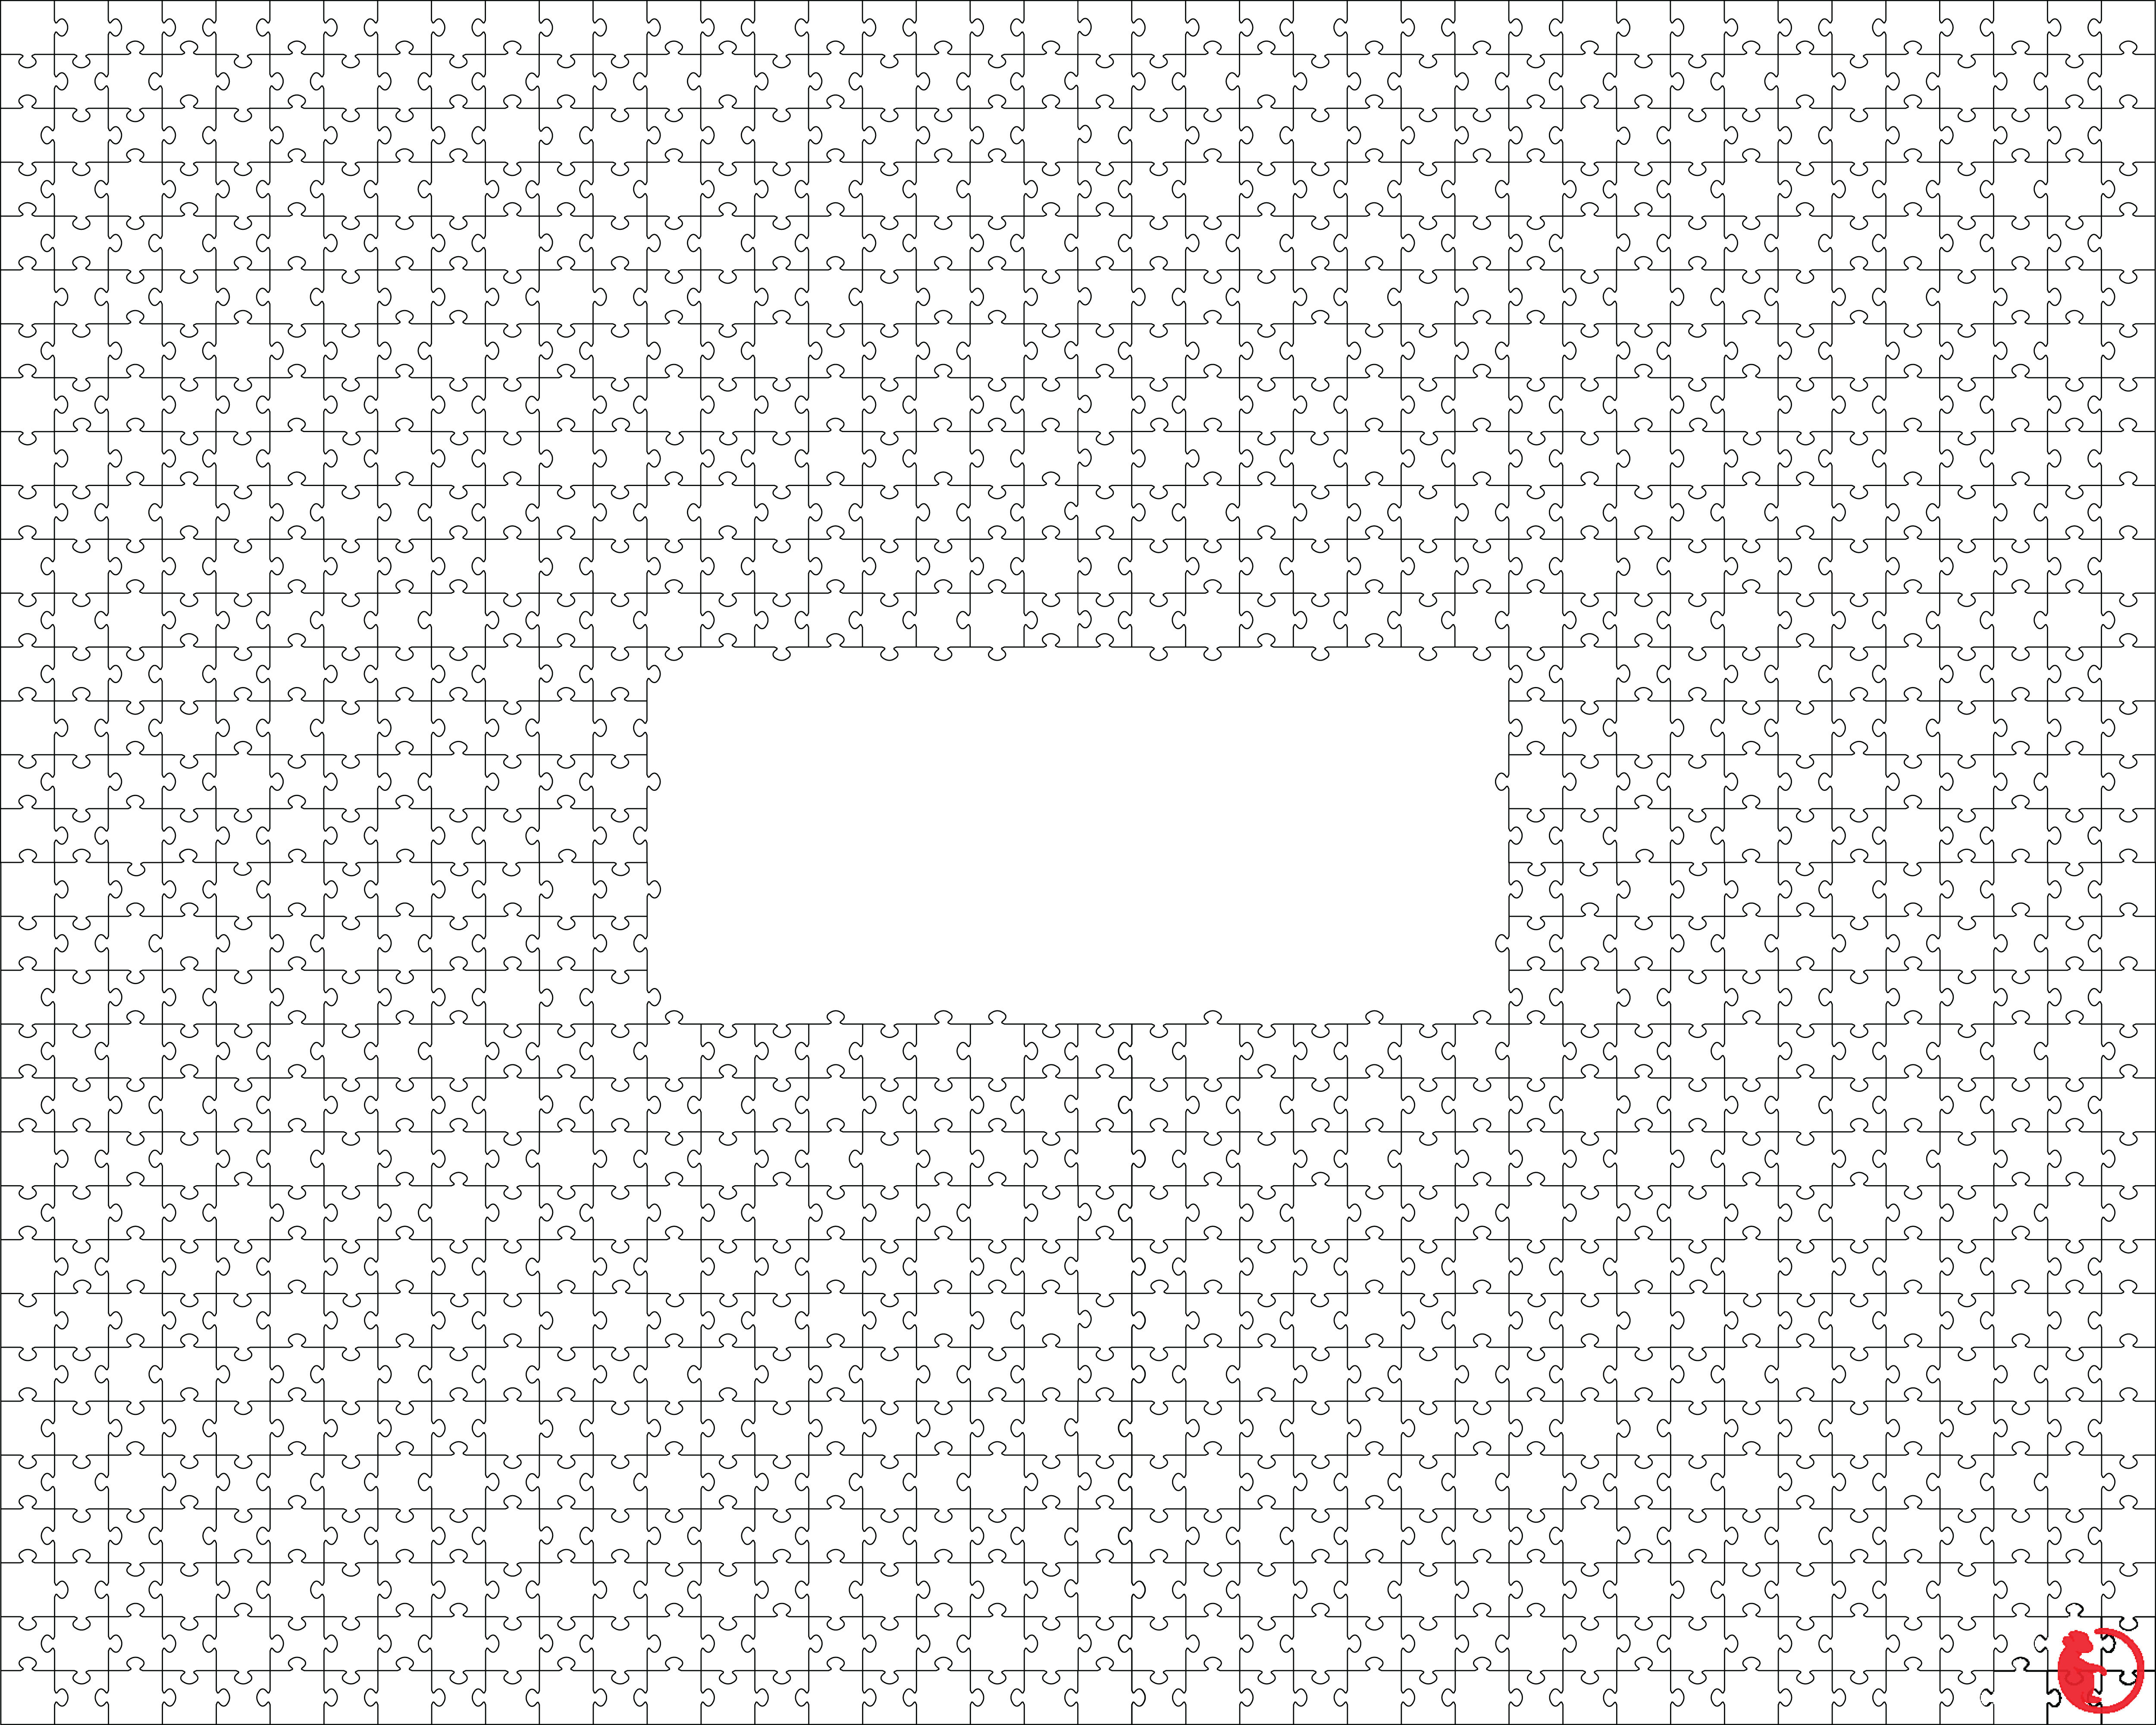 White Puzzle Design Jigsaw Template Svg Dxf Png Eps And Jpg